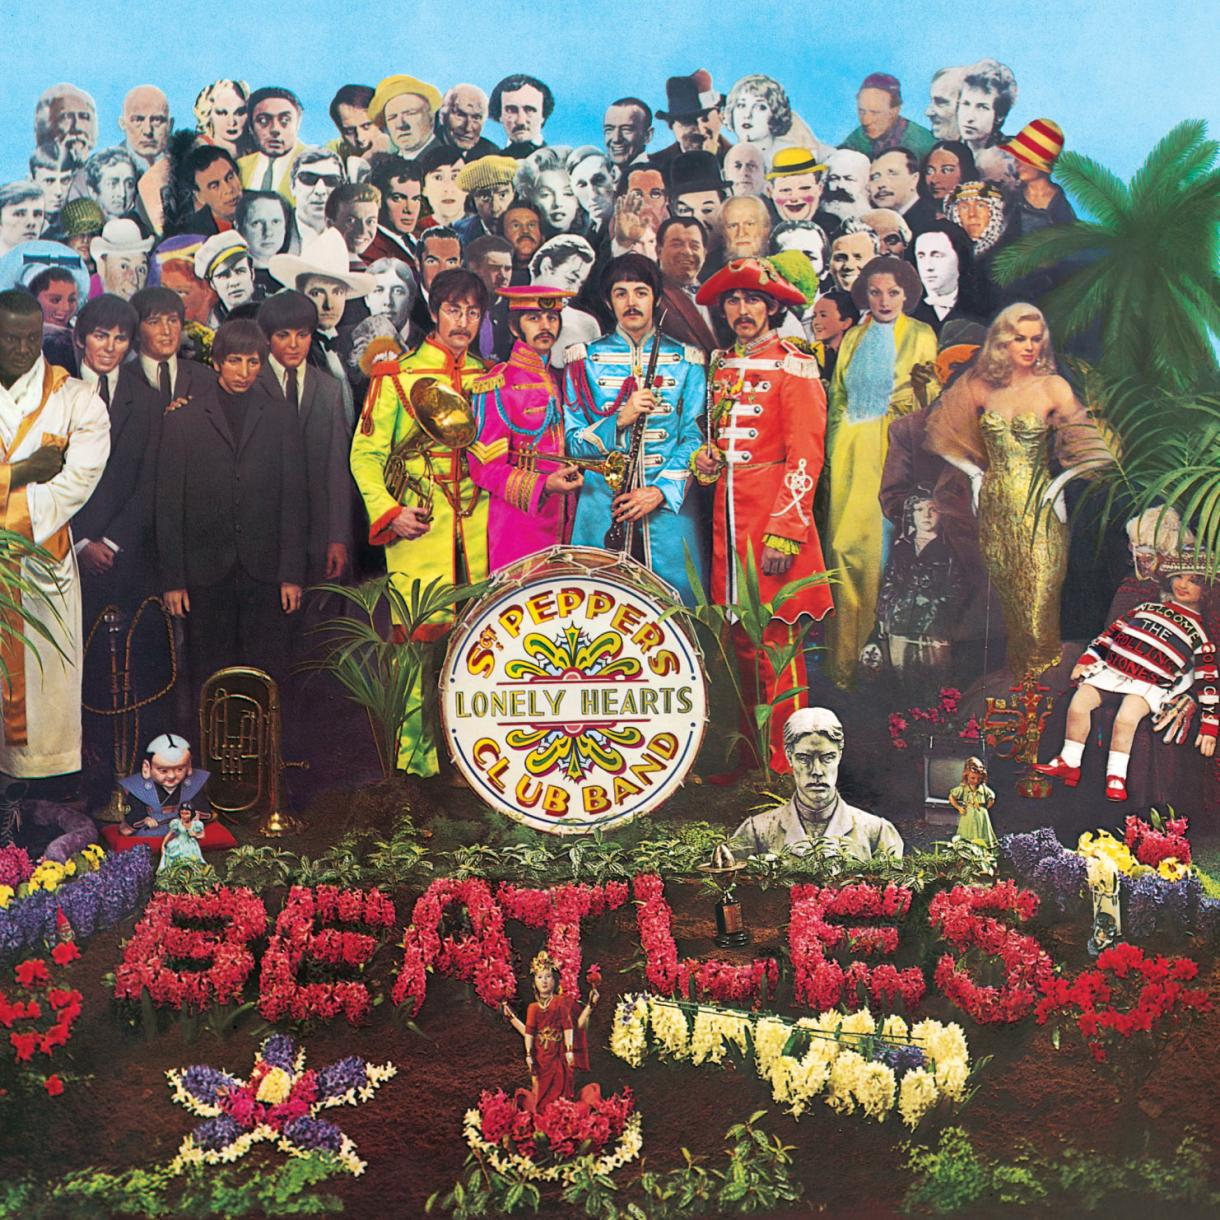 The Beatles - SgtPepper